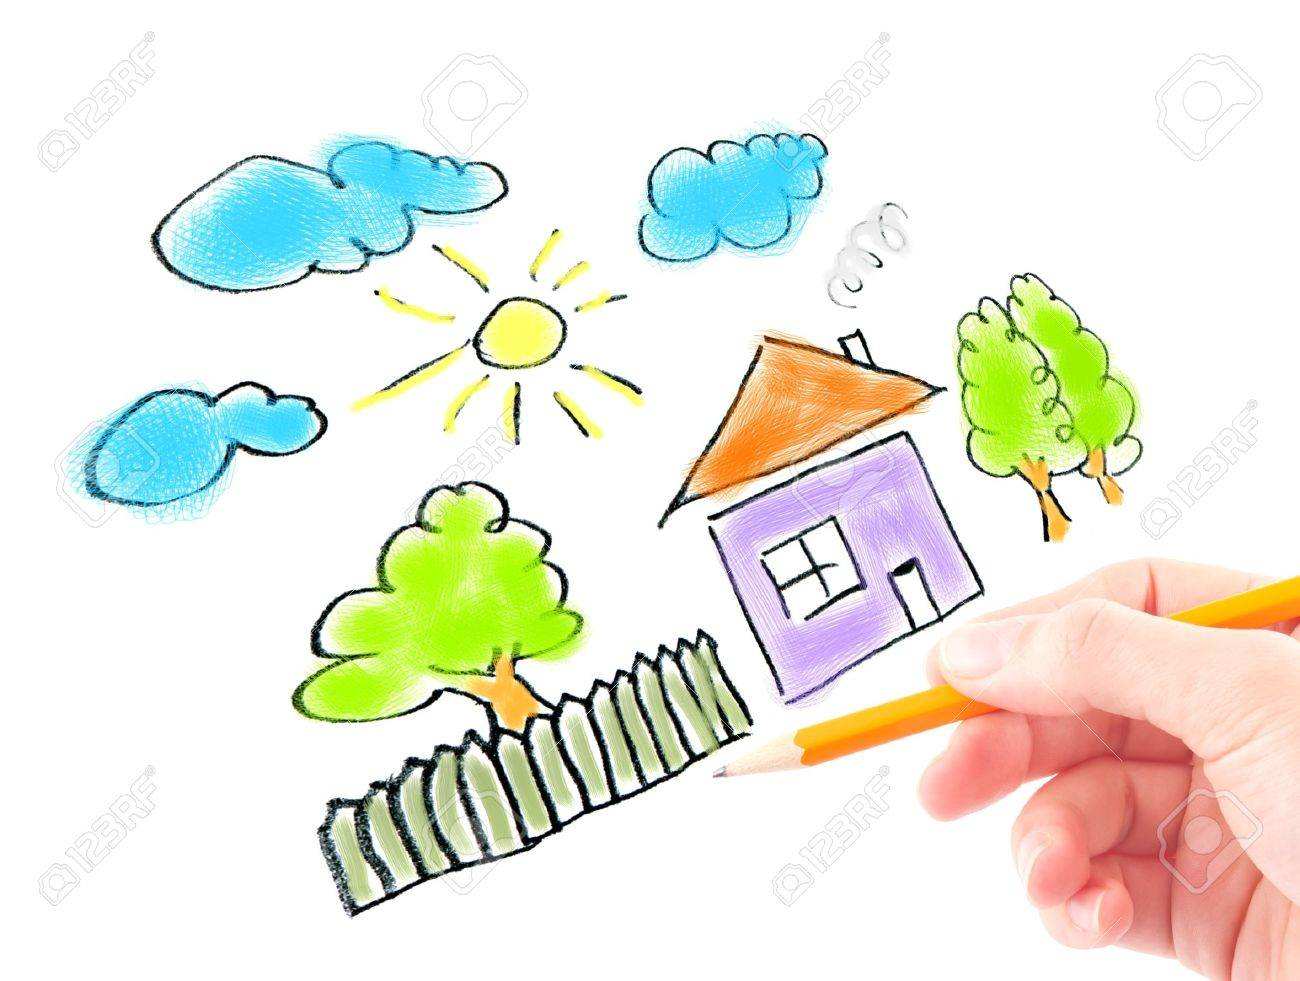 Woman's hand with the pencil and brushes drawing the dream home on a white sheet of paper Stock Photo - 9701568